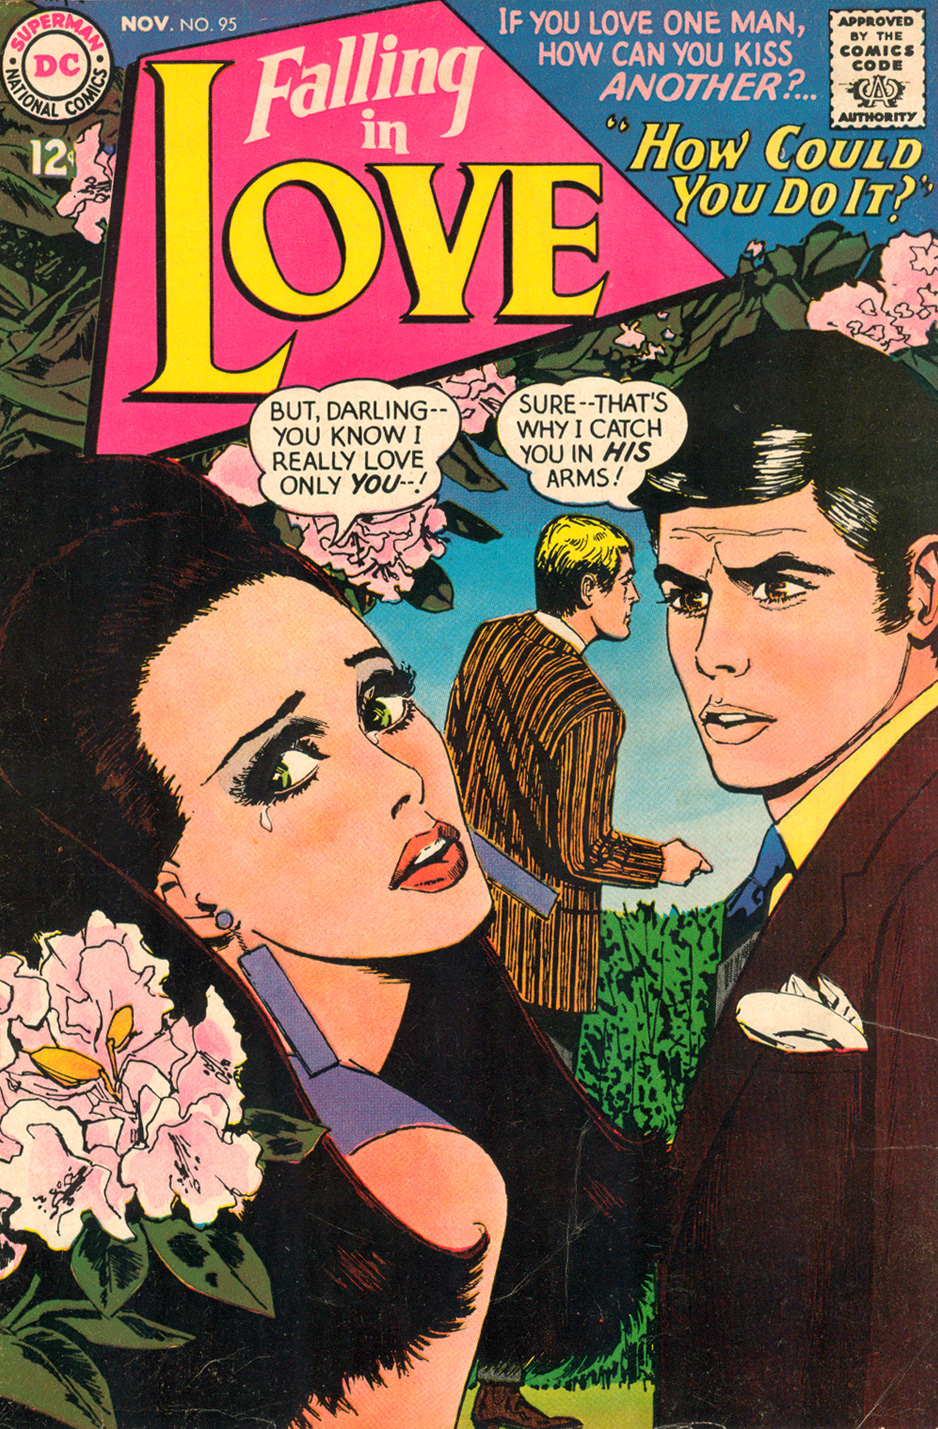 Tony Abruzzo Cover Pencils  Falling in Love  #95 (November 1967)